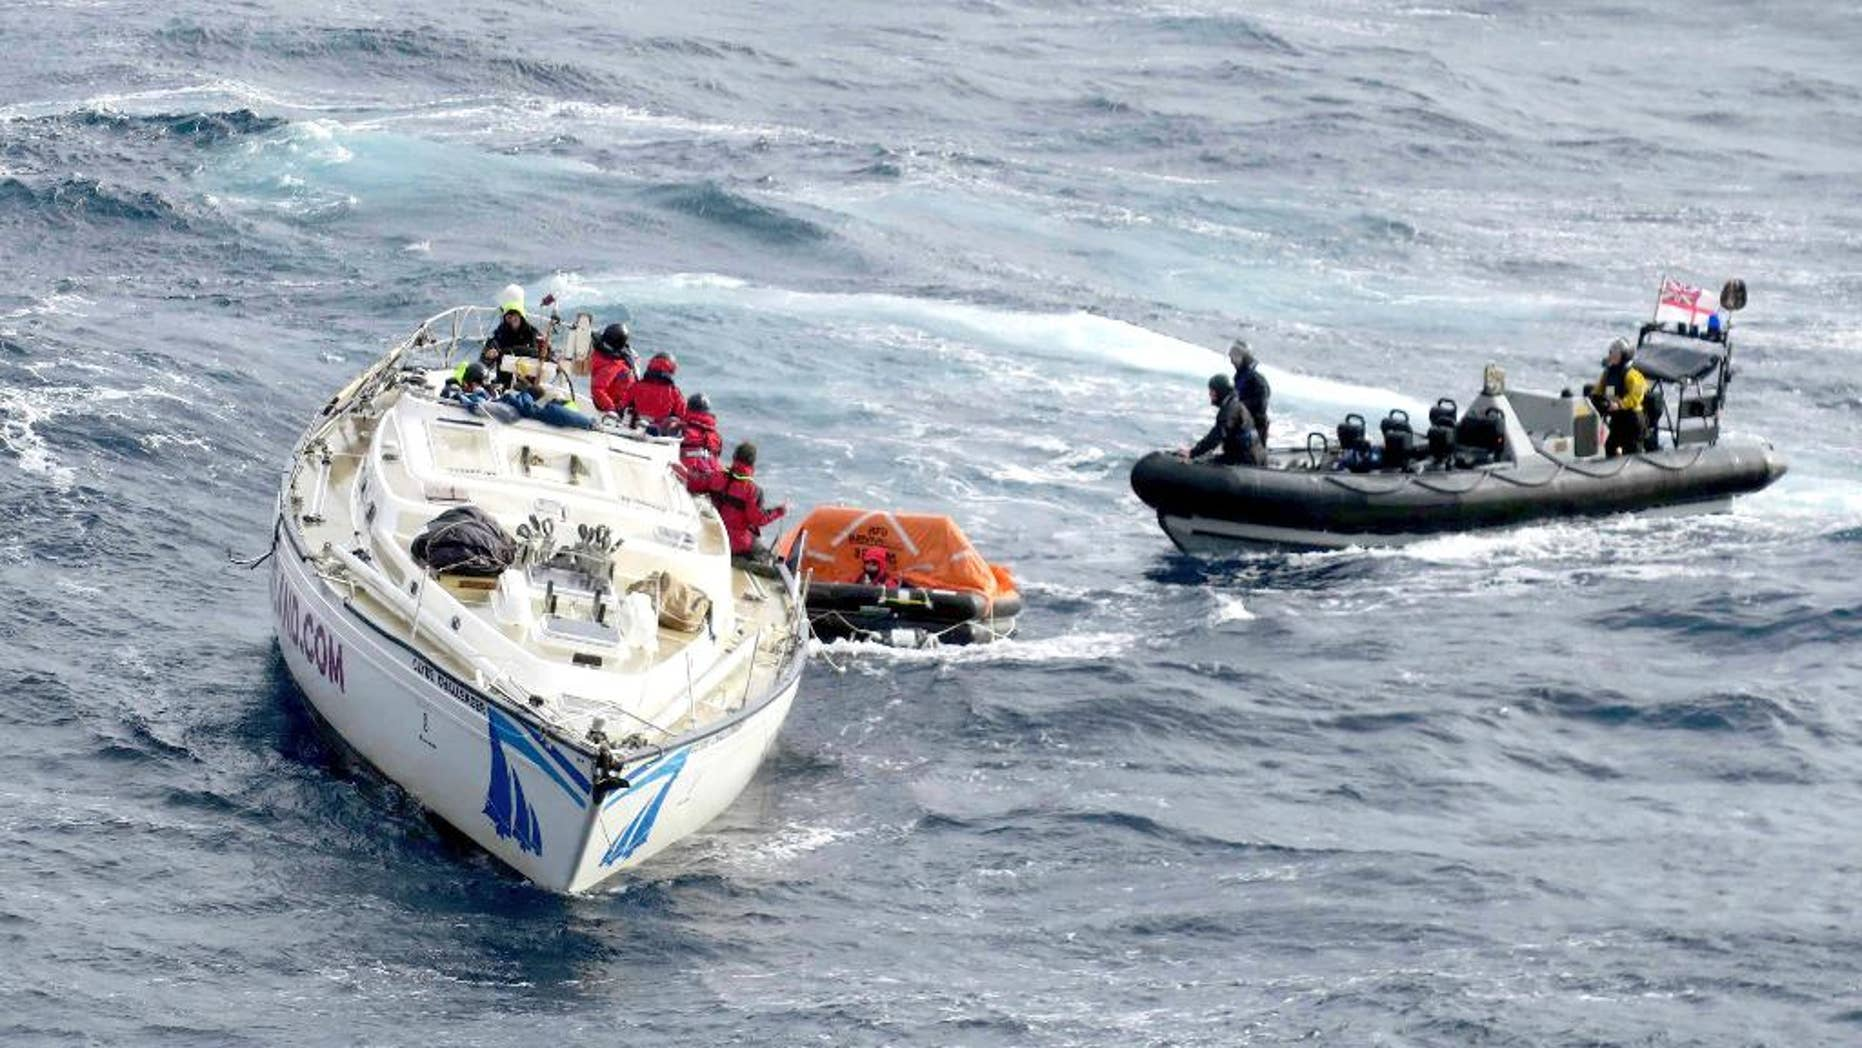 In this photo provided by the Ministry of Defence on Sunday, Feb. 12, 2017, crew from the Royal Navy's Type 45 destroyer HMS Dragon, man a large sea boat as they help to rescue crew members from a racing yacht in the Atlantic Ocean. Britain's Royal Navy says a warship has rescued 14 sailors after their racing yacht lost its mast, leaving them stranded in the mid- Atlantic. Britain's Coast Guard received a mayday signal from the 60-foot (18-meter) Clyde Challenger late Thursday. (Royal Navy/MOD via AP)